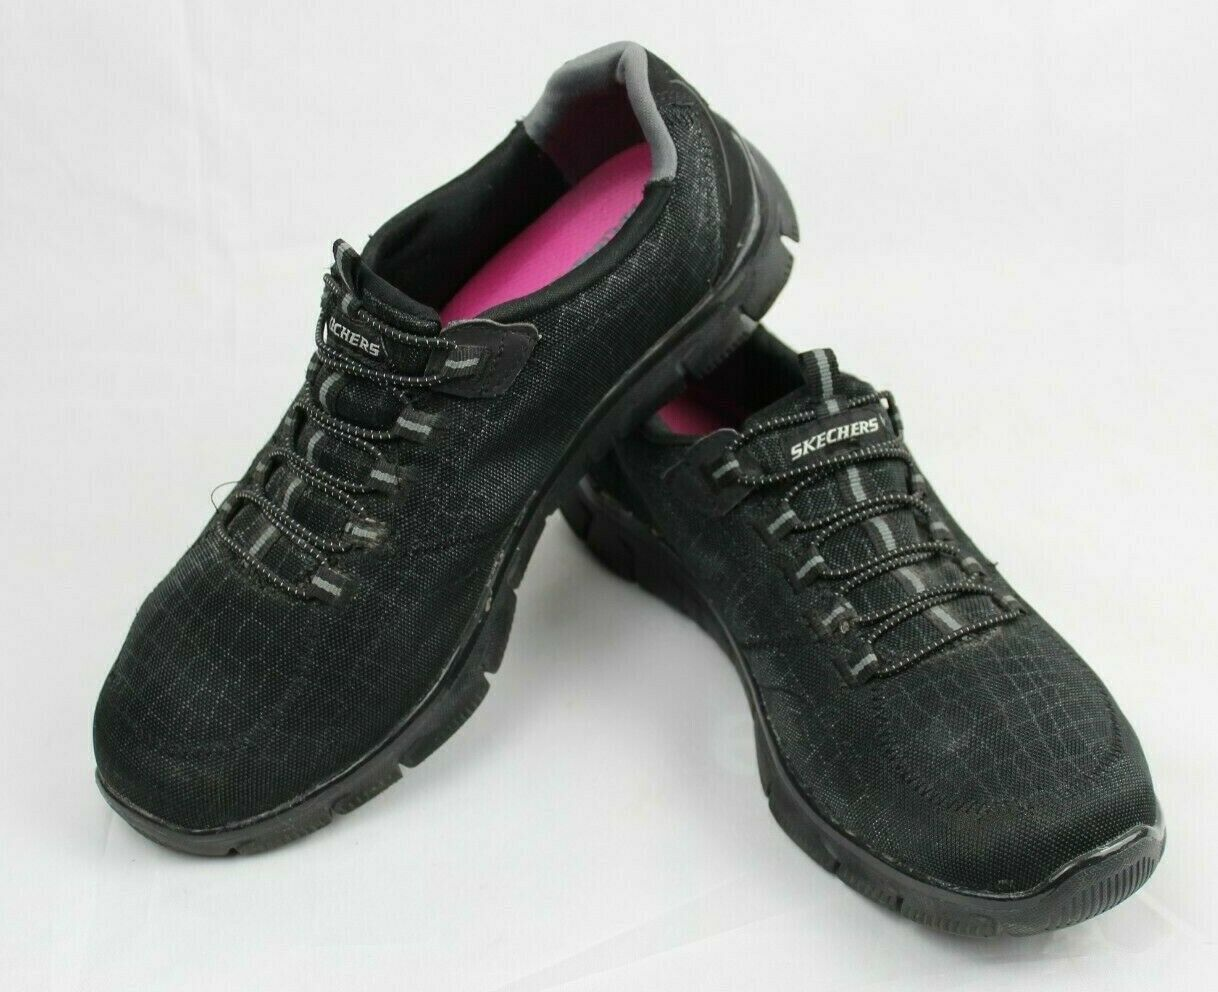 Skechers women's shoes relaxed fit air cooled memory foam black size US 9.5 image 3